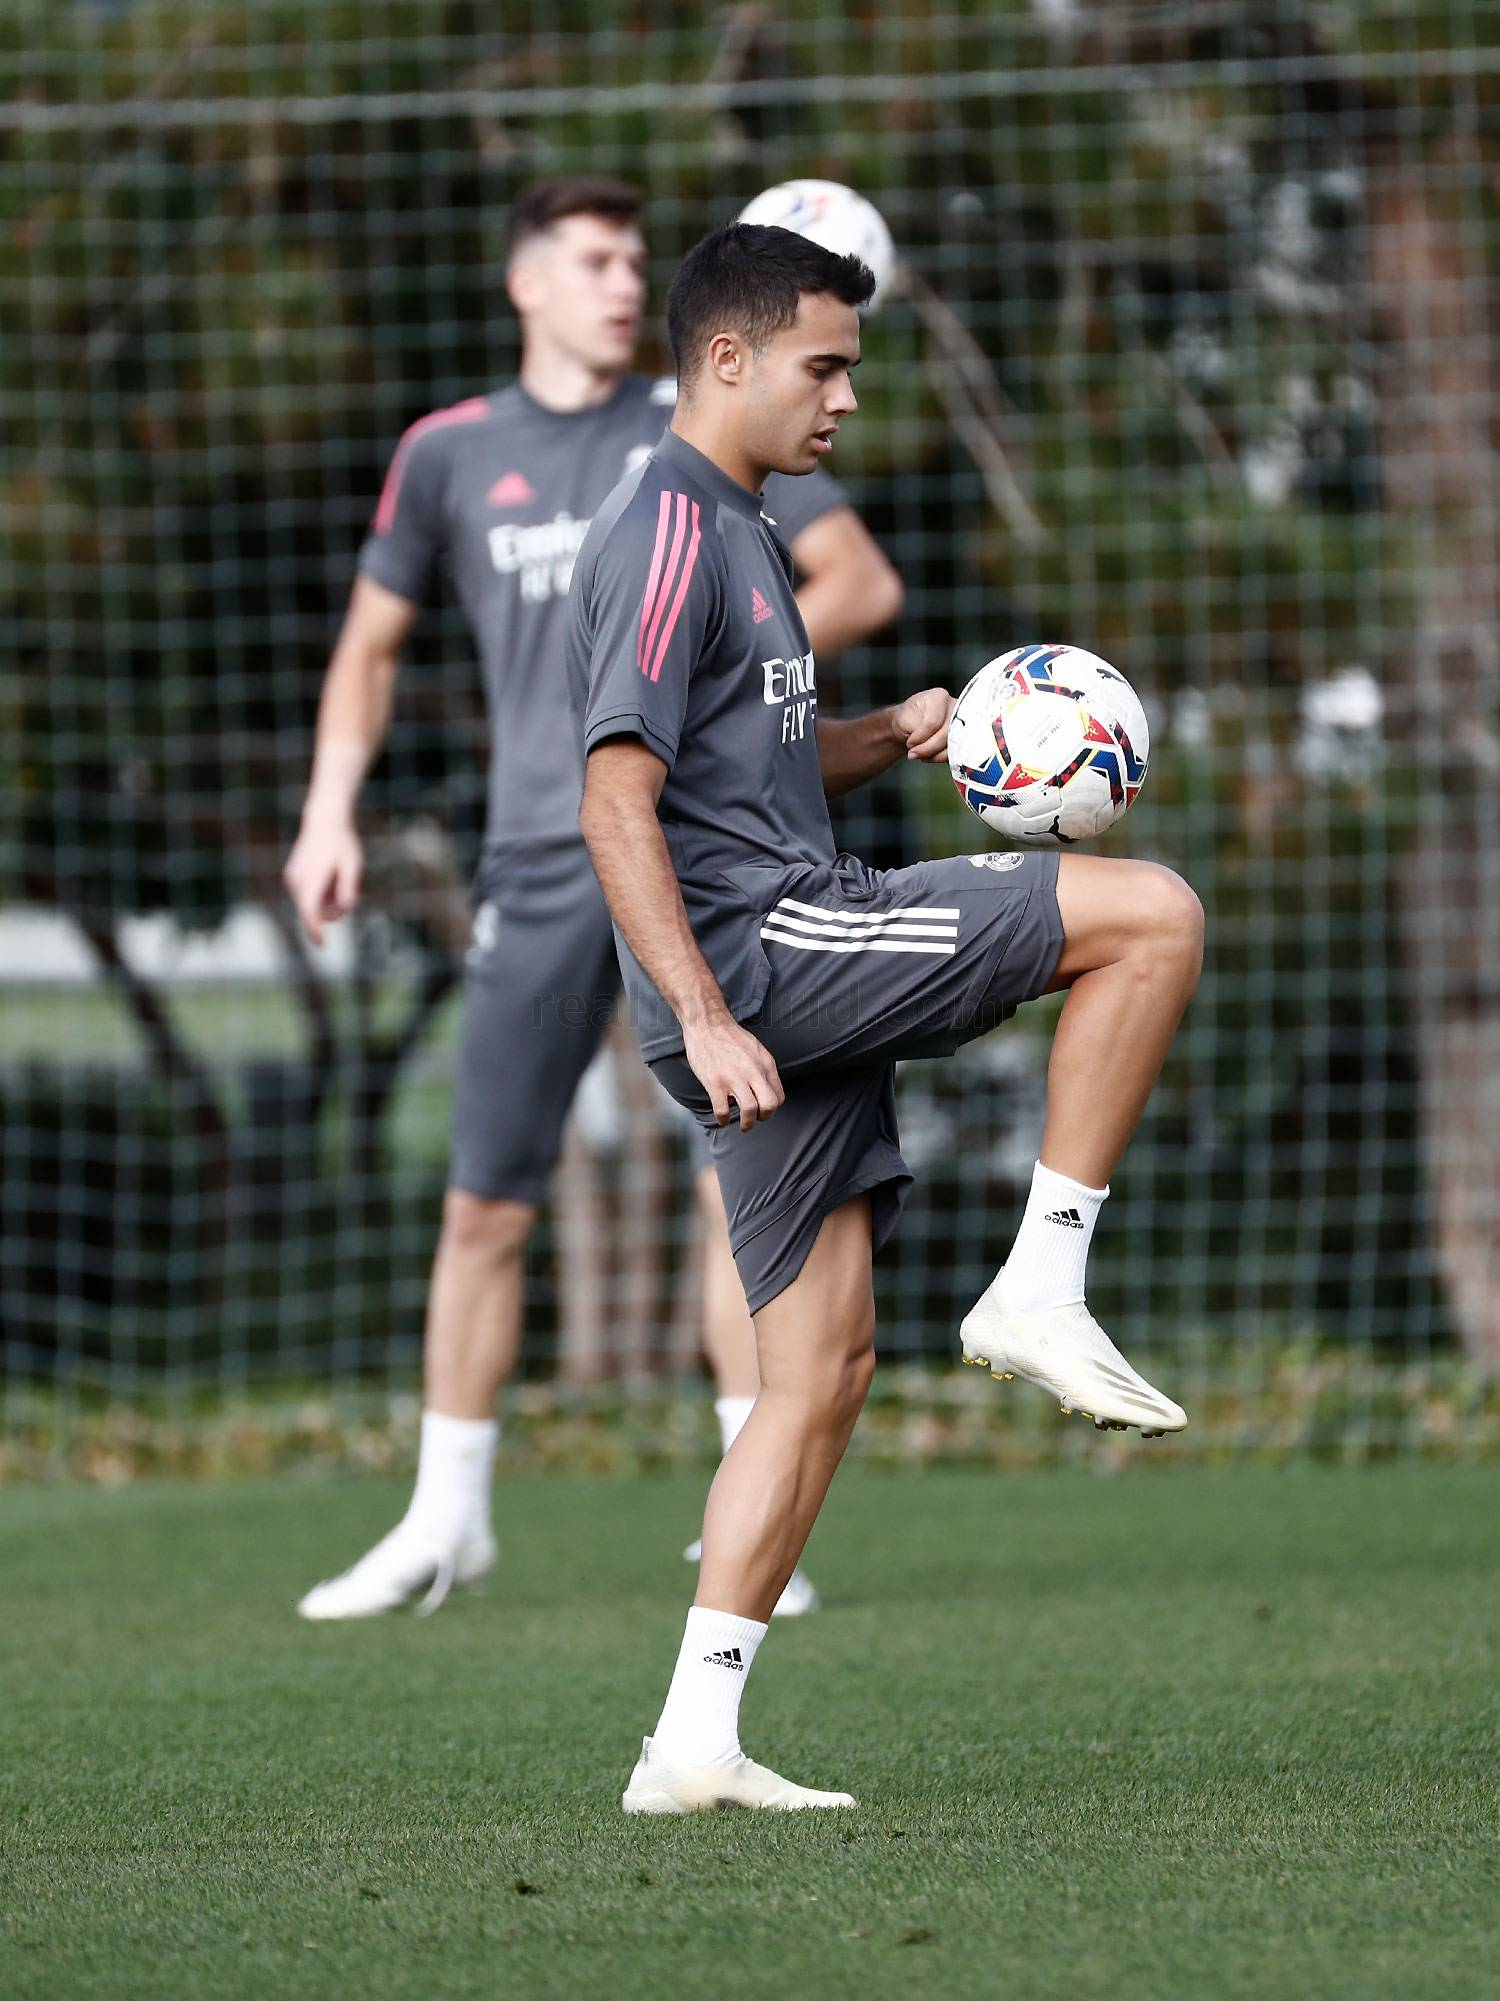 Real Madrid - Entrenamiento del Real Madrid  - 15-09-2020